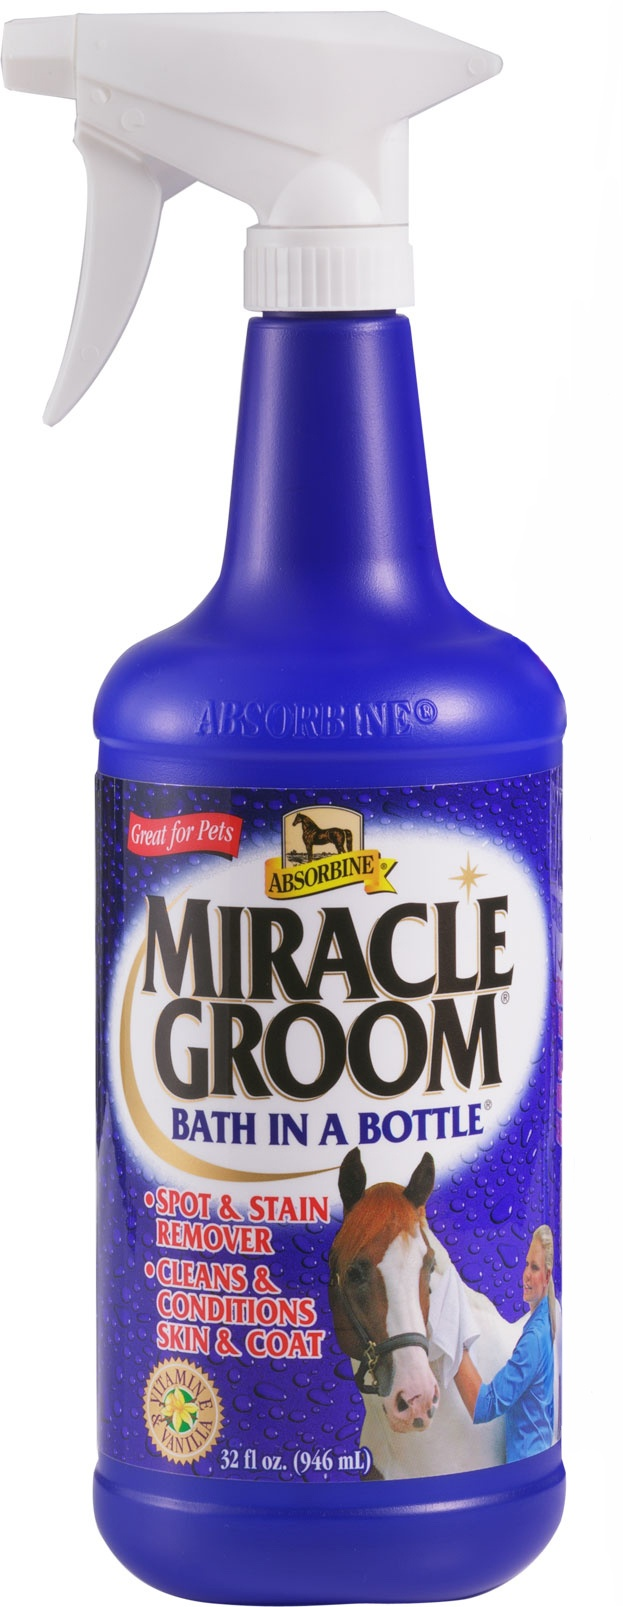 Absorbine Miracle Groom Tørrshampoo